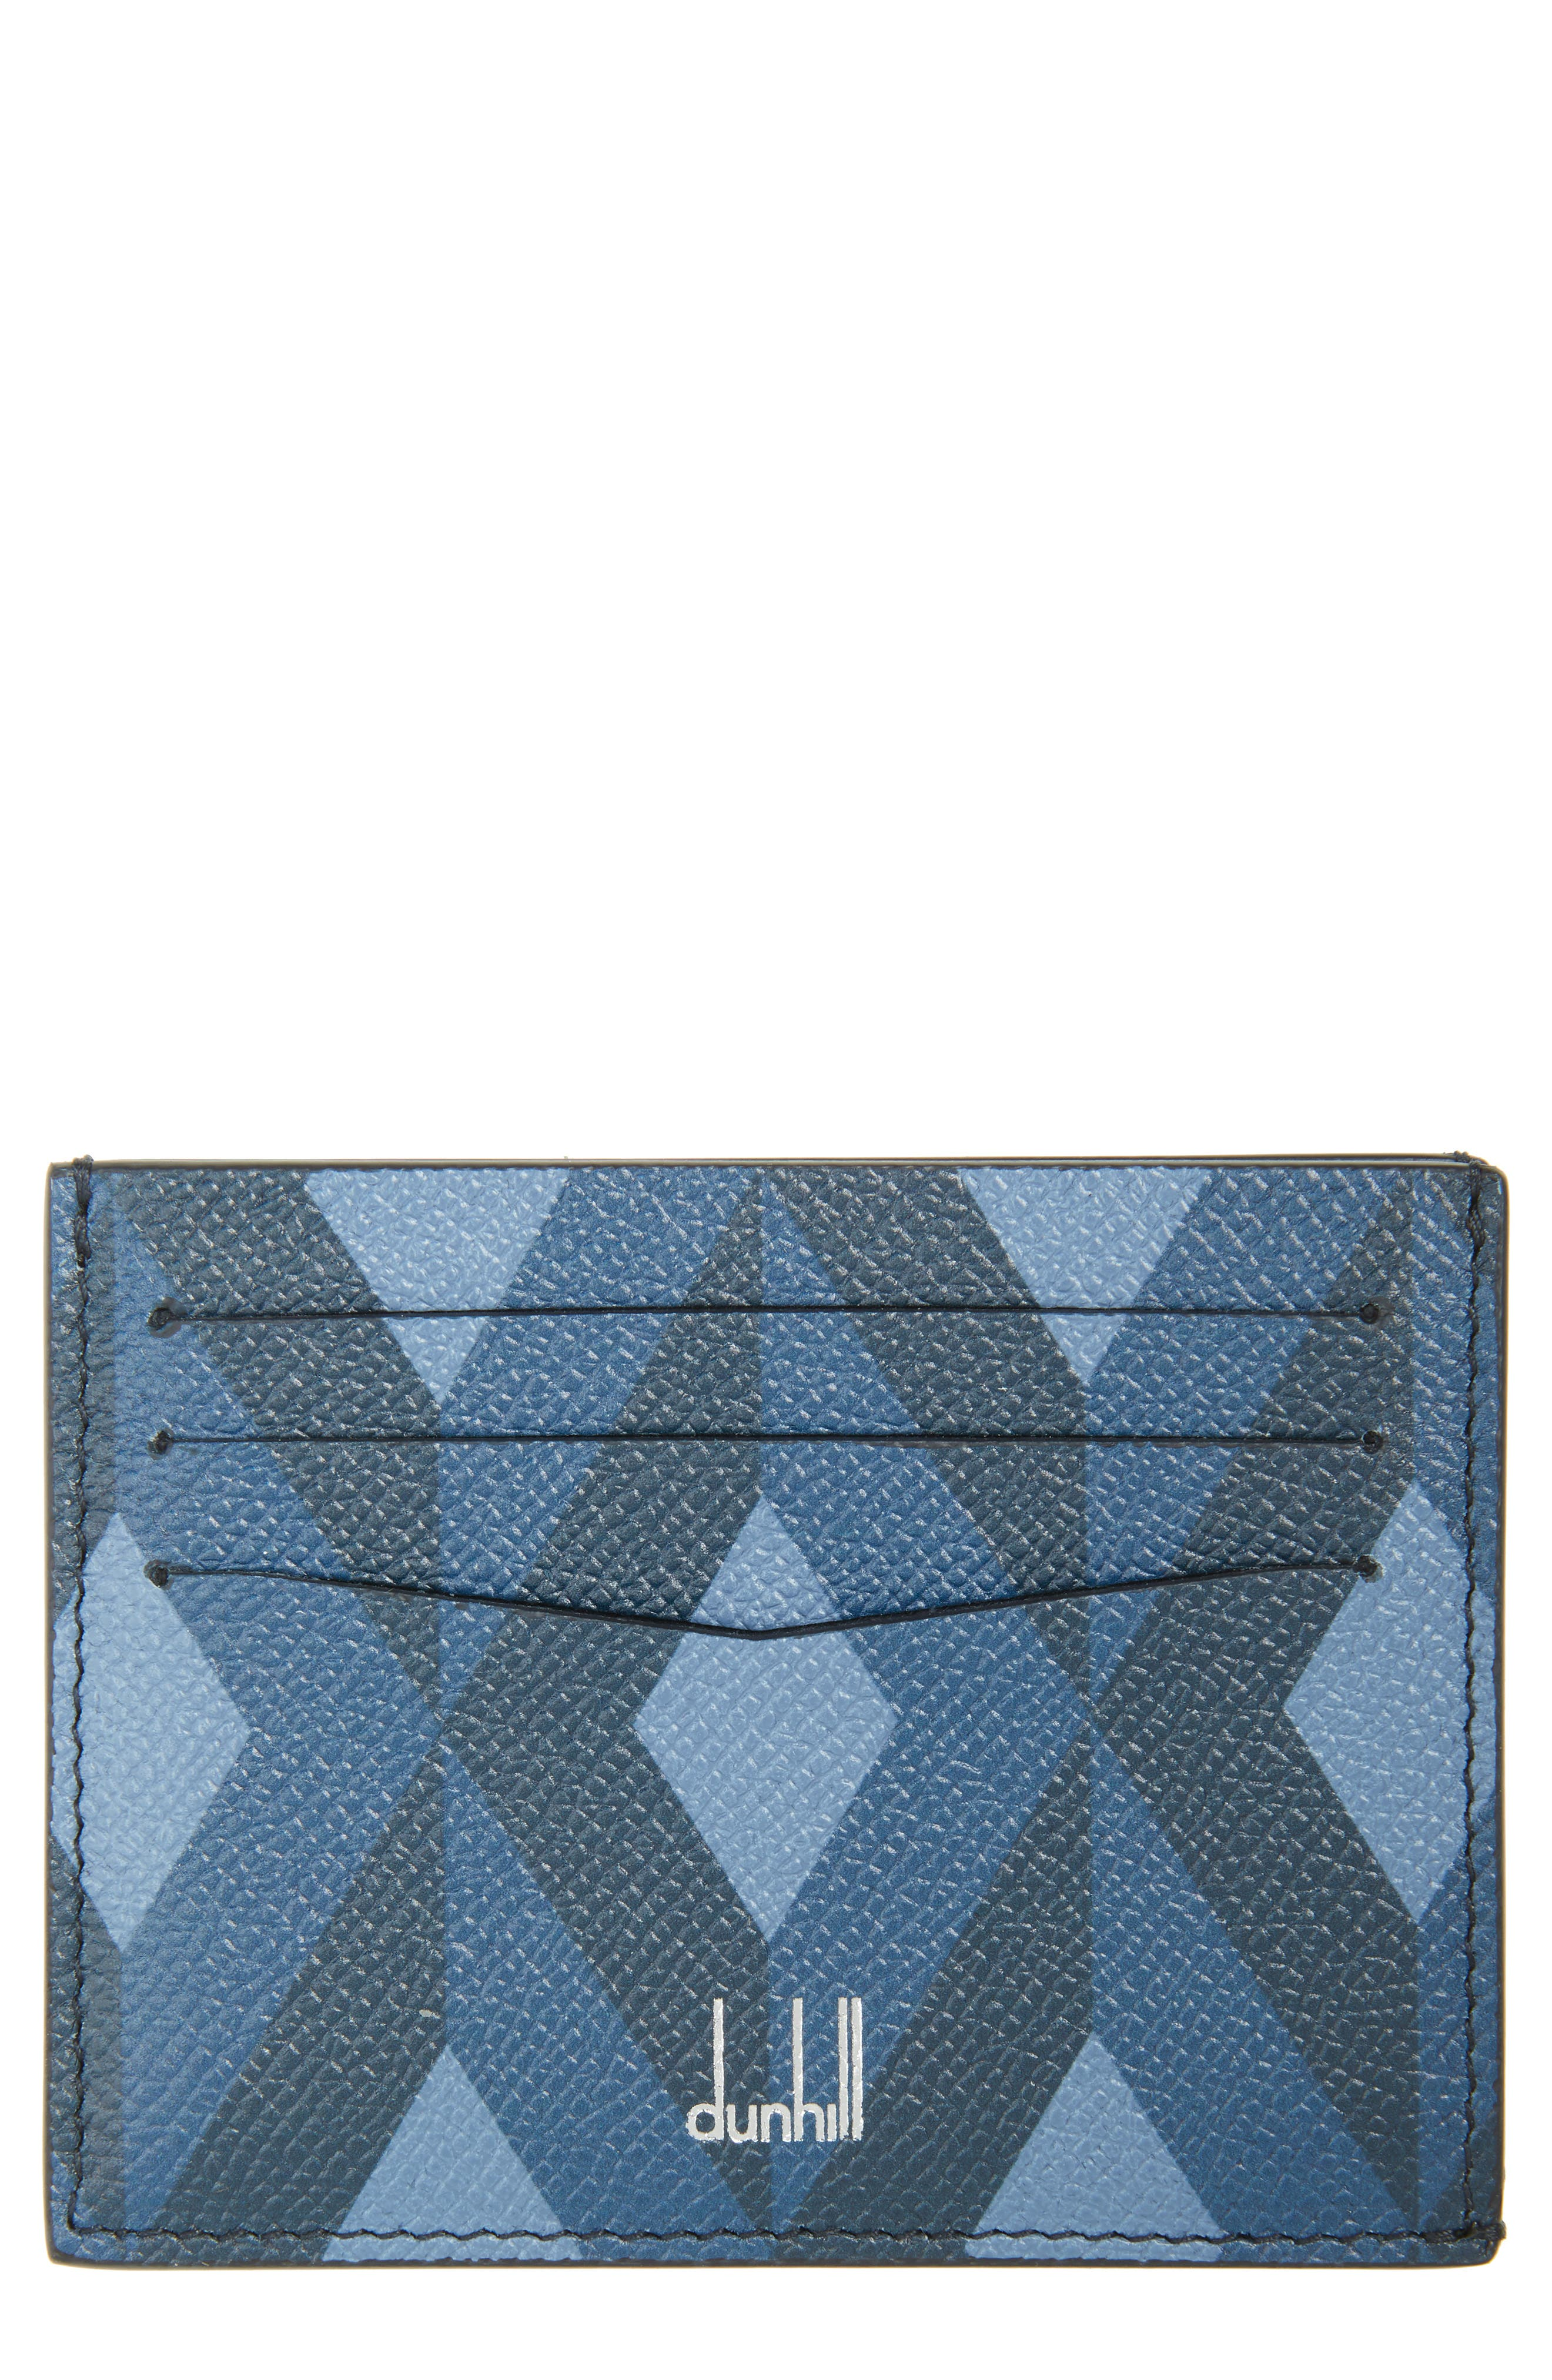 Dunnhill Cadogan Leather Card Case,                             Main thumbnail 1, color,                             BLUE